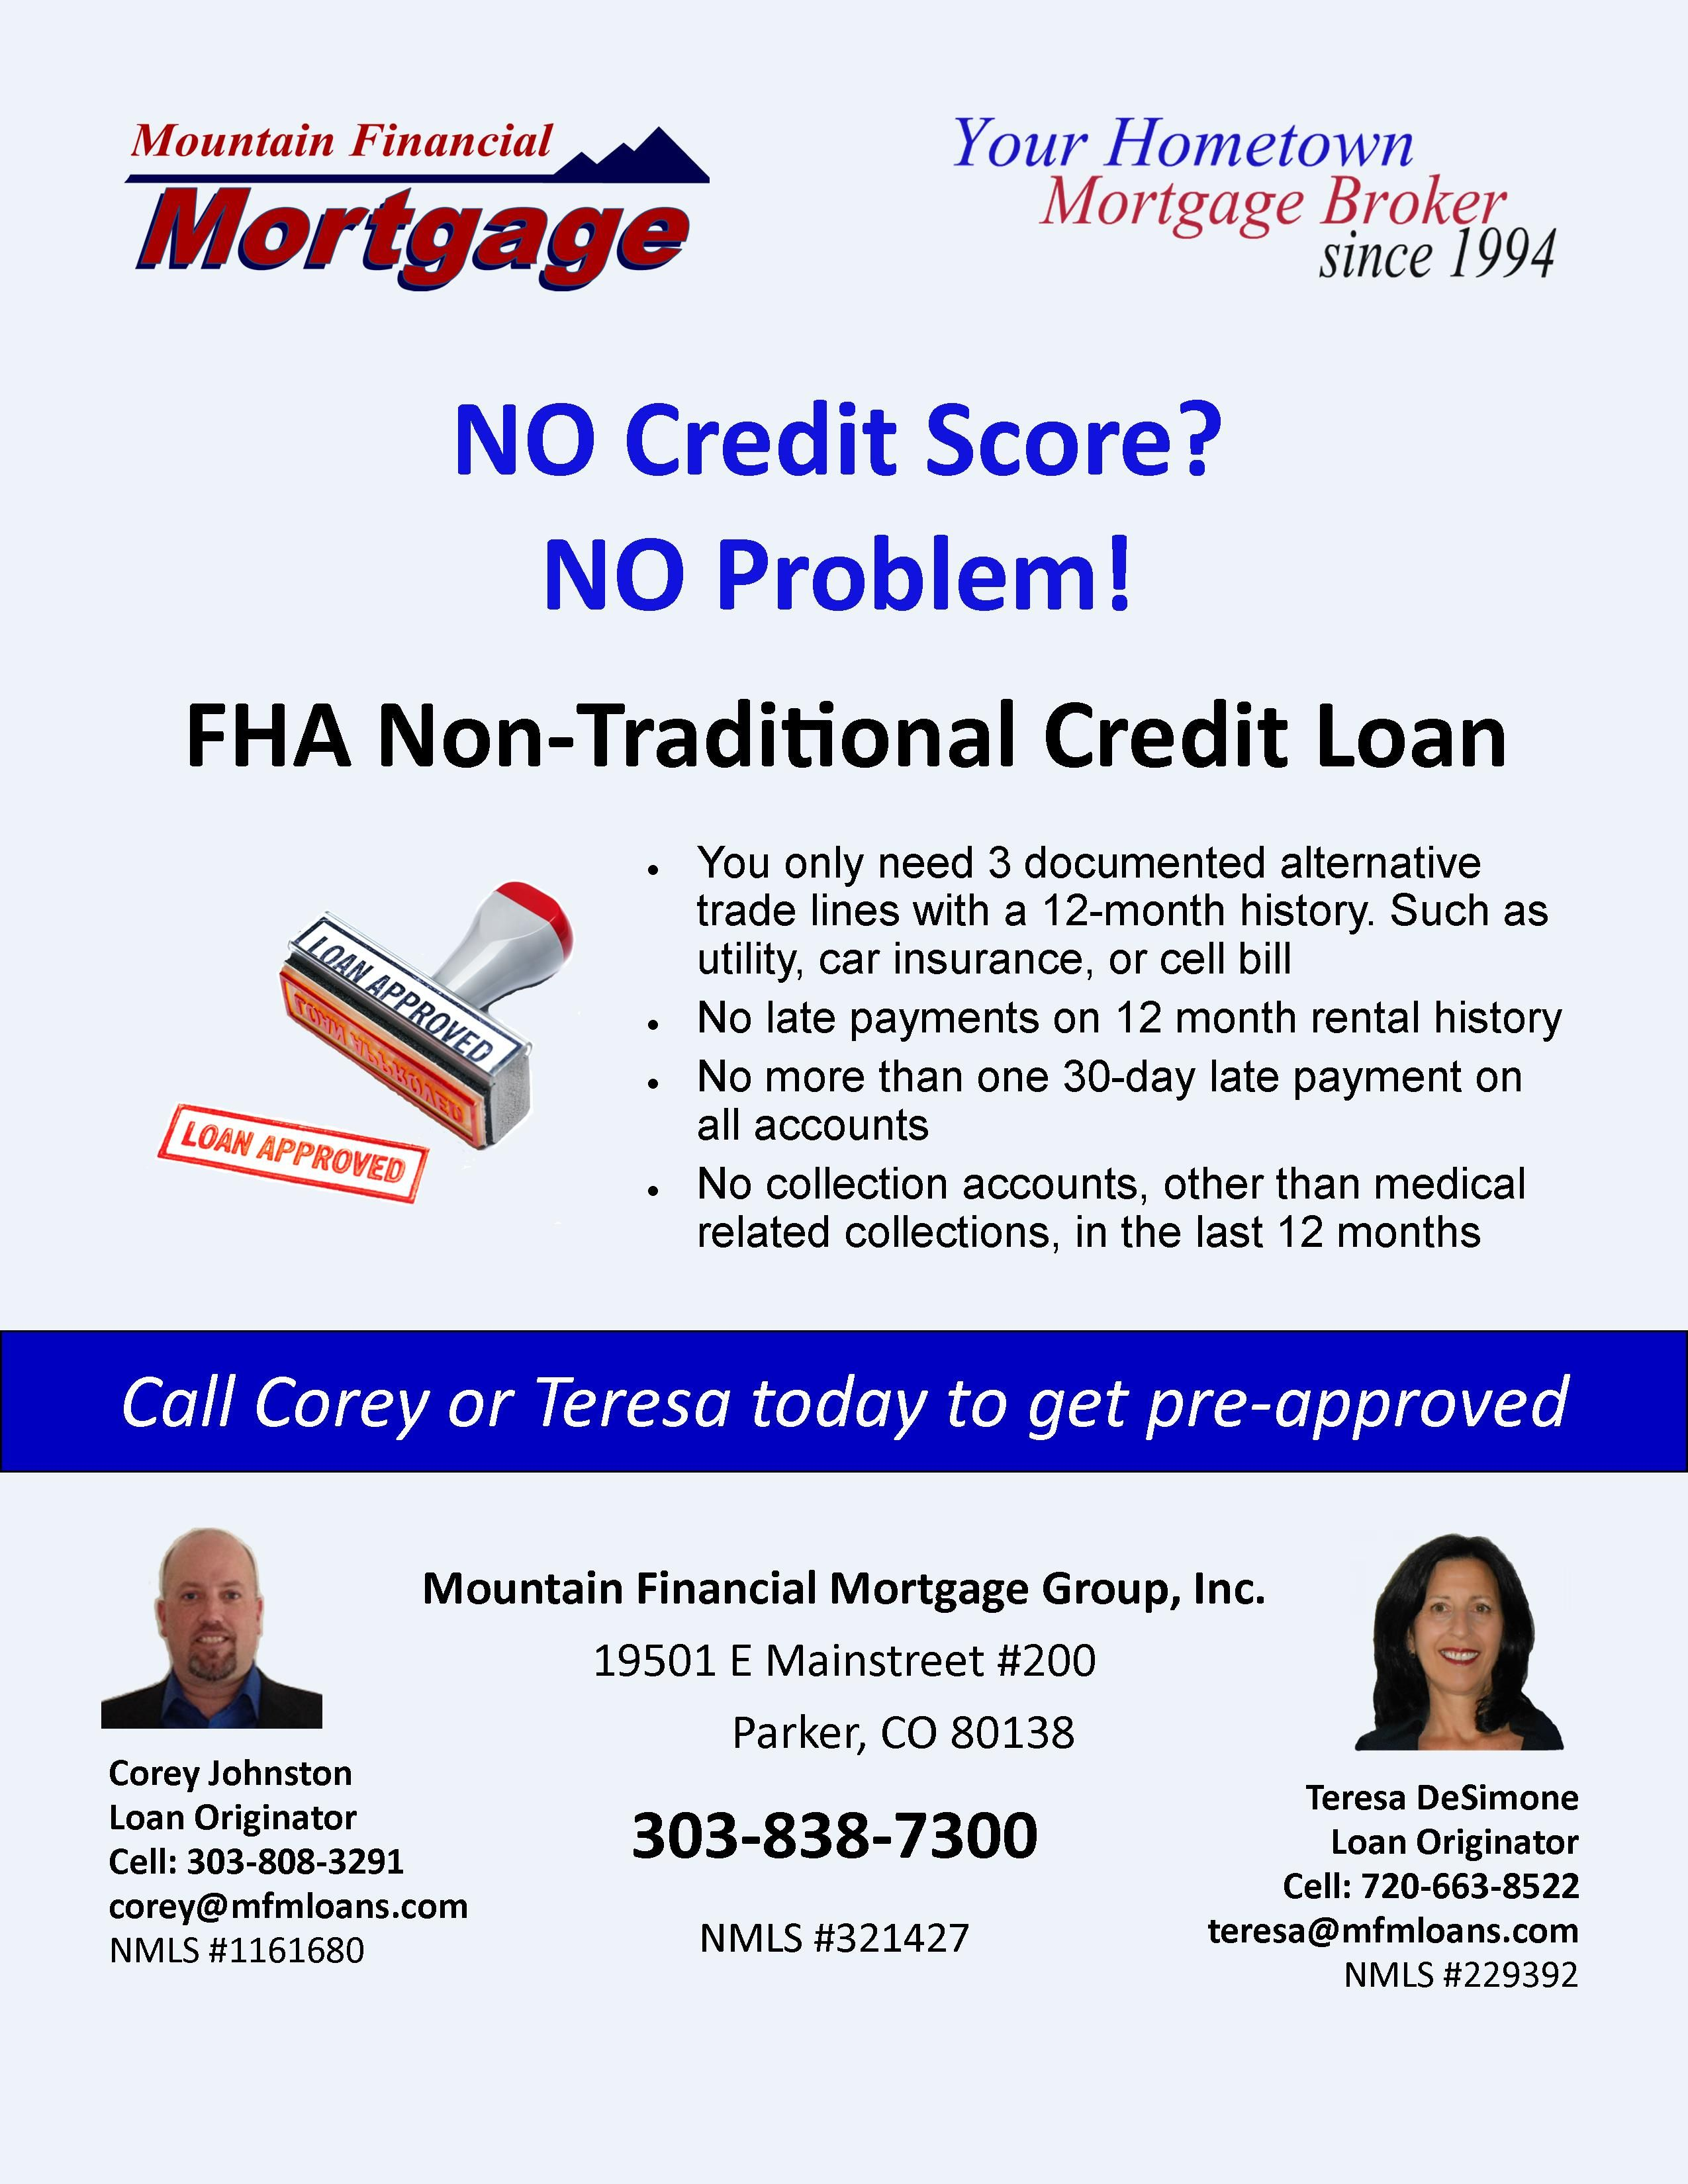 No Credit Score Needed With The Fha Non Traditional Credit Loan